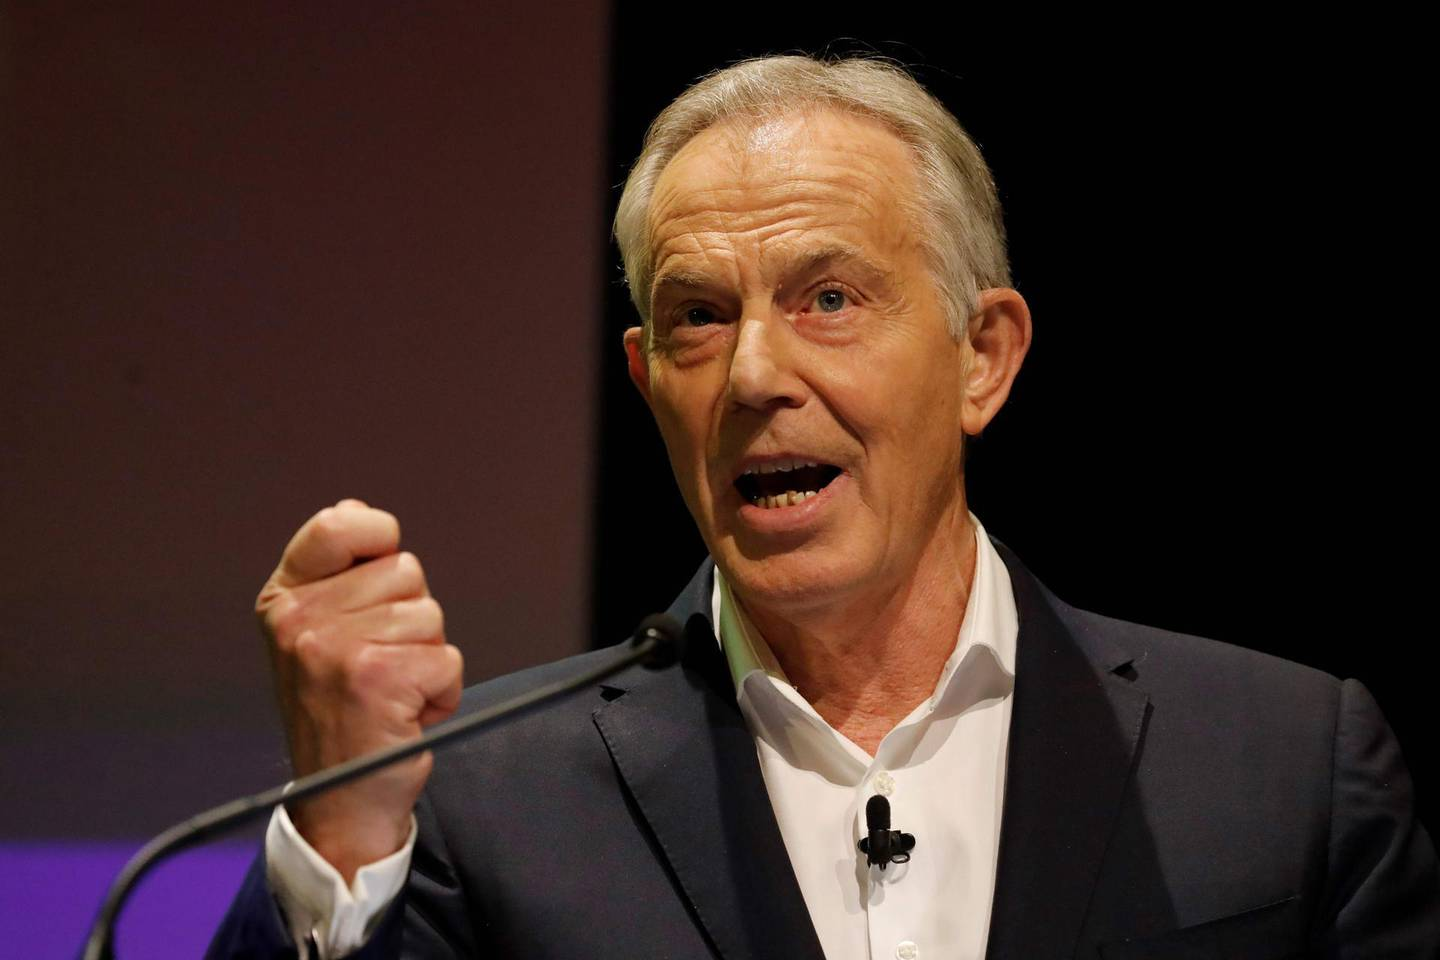 """(FILES) In this file photo taken on December 06, 2019 Britain's former prime minister Tony Blair speaks during the 'Stop The Brexit Landslide', organised by the Vote for a Final Say campaign and For our Future's Sake, at London's Mermaid Theatre in London. Former British prime minister Tony Blair urged his Labour party on December 18, 2019, to abandon """"crazy revolutionary socialism"""" as it seeks a new leader after its worst election defeat since the 1930s. Britain's shellshocked left entered a period of soul-searching and mourning in the wake of last Thursday's drubbing at the polls.  / AFP / Tolga AKMEN"""